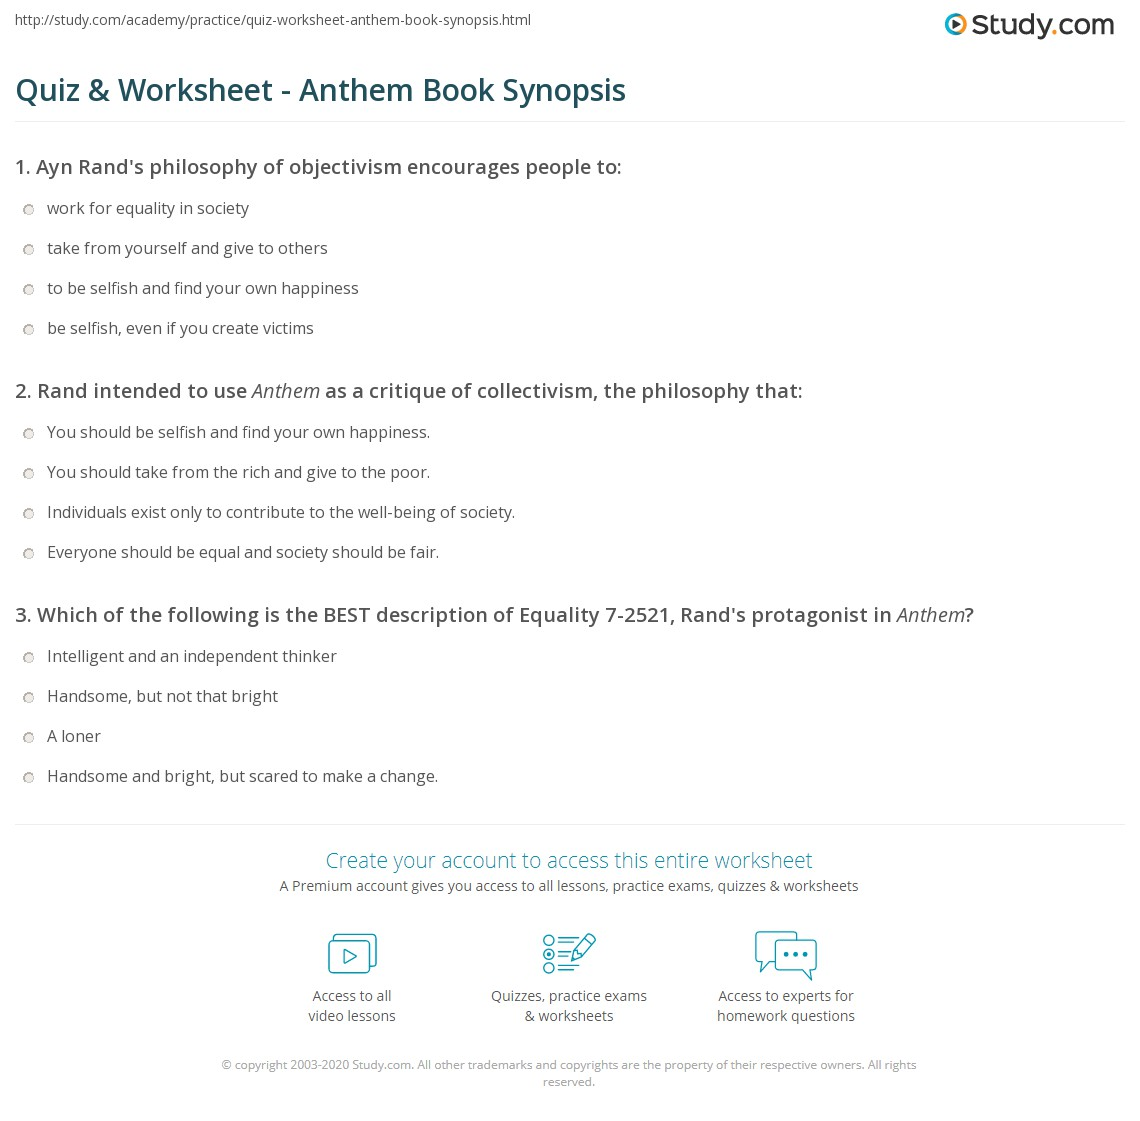 college admissions essay contest 2008 Biology genetics homework help diversity college admissions essay write my service essay contest essay on diversity for college admission 2008 -2017.